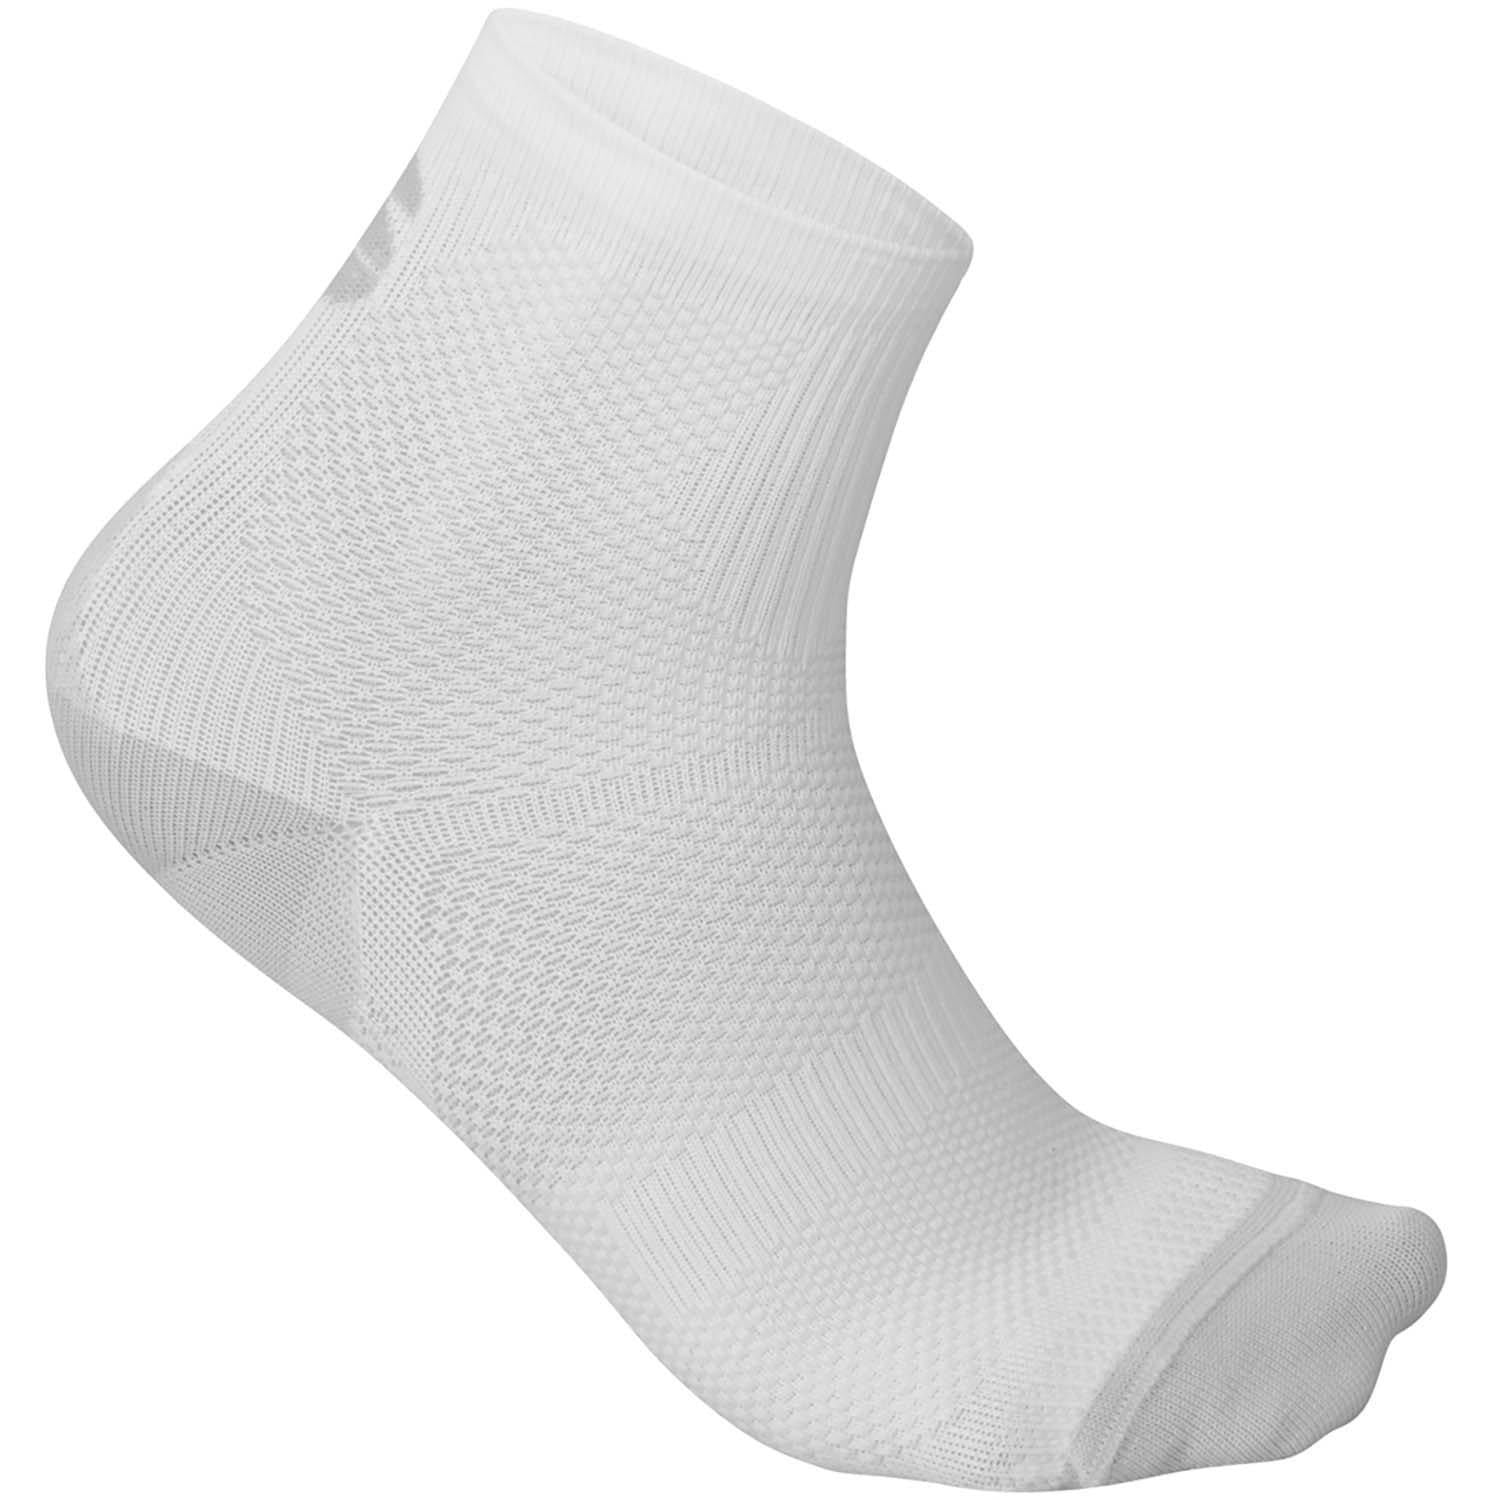 Sportful-Sportful Pro Race Women's Socks-White-S/M-SF2006810109-saddleback-elite-performance-cycling